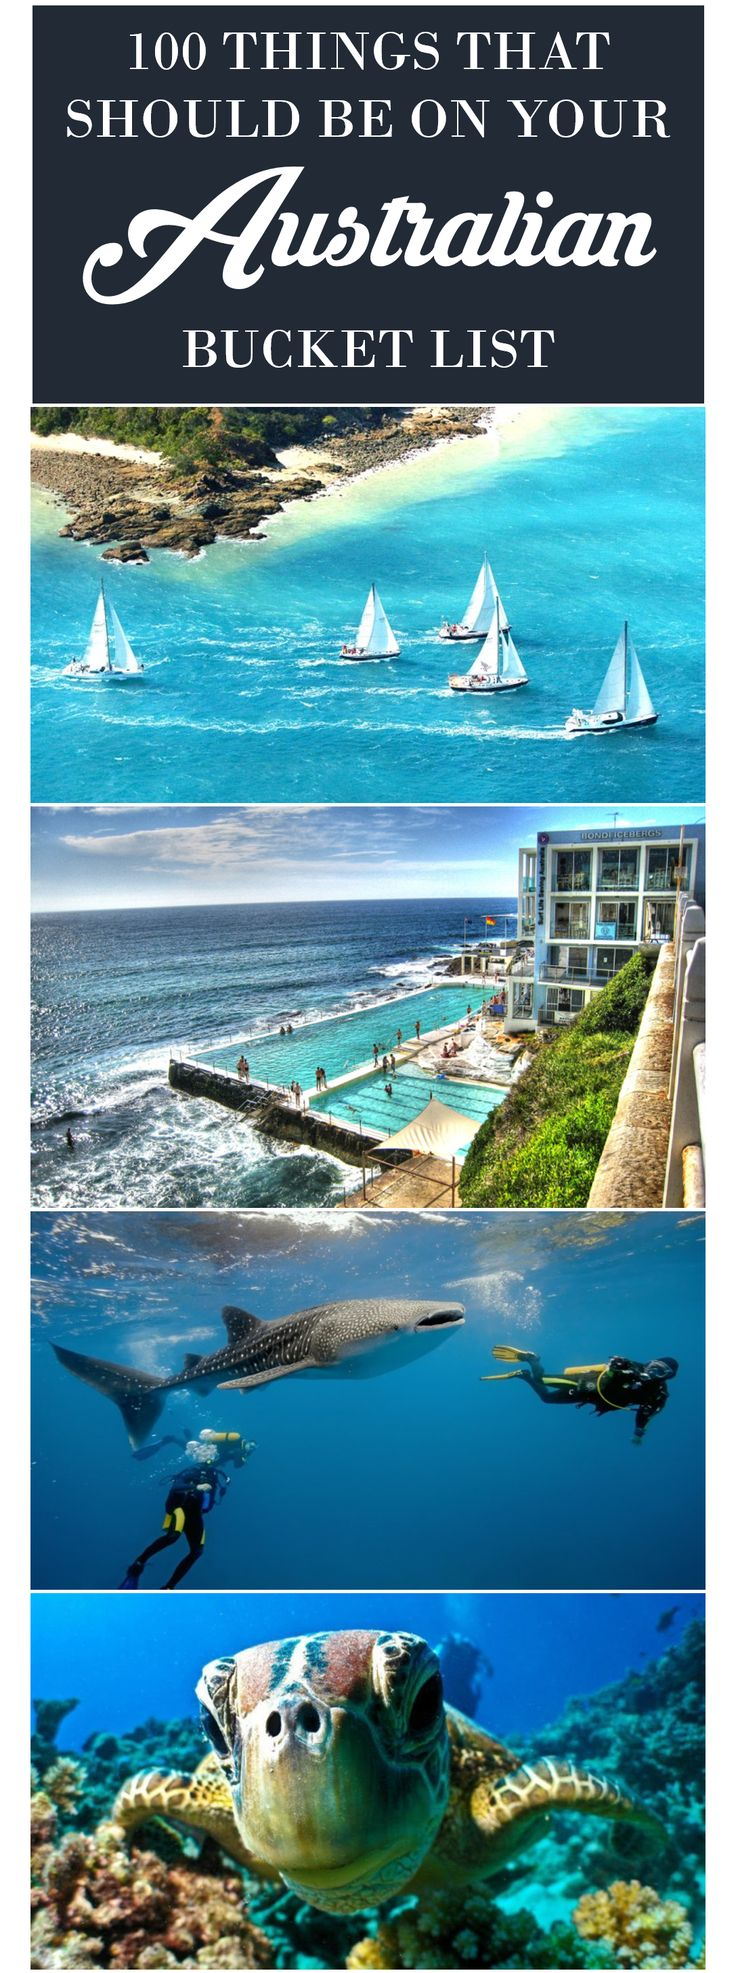 The Top 100 Must Sees in Australia   One Chel of an Adventure